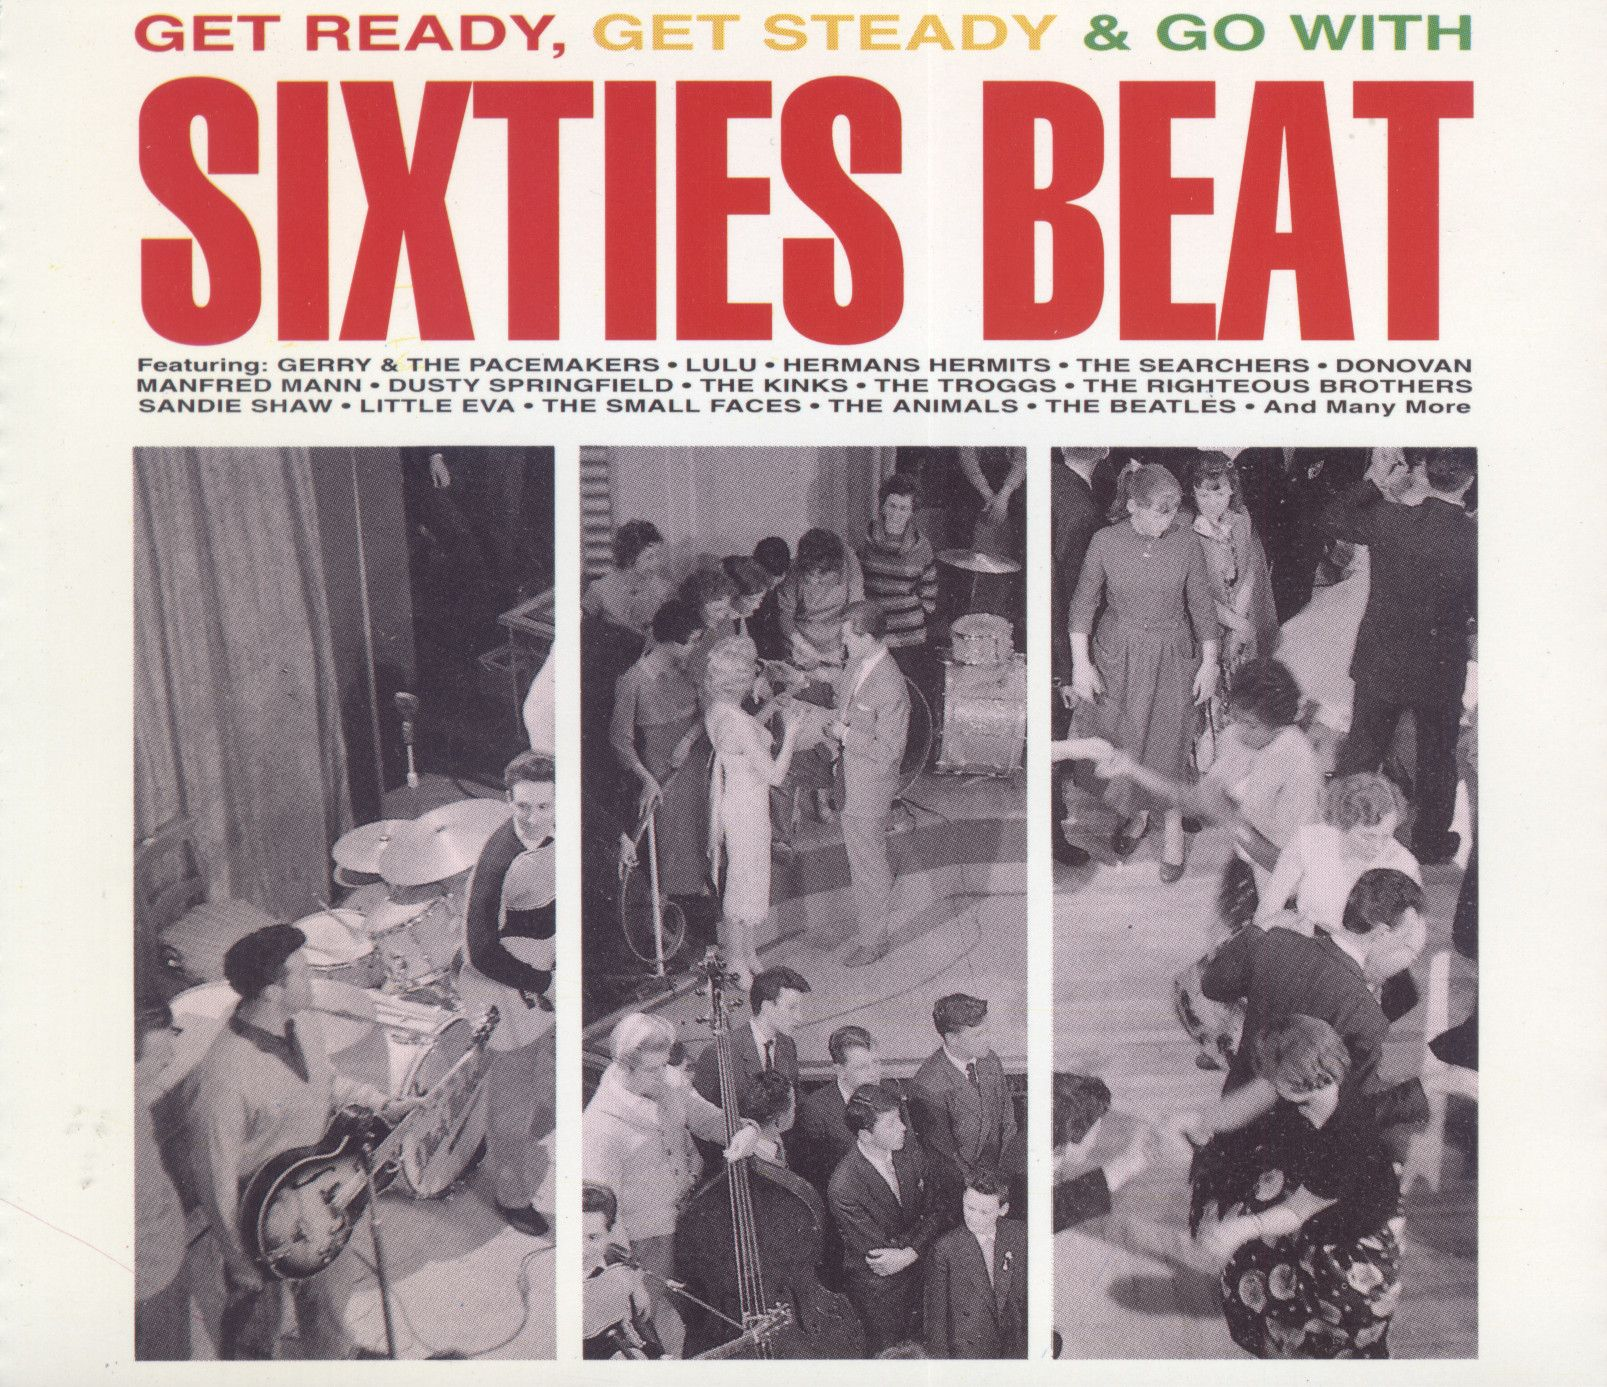 Sixties Beat Compilation Album Cover 60s Music Dusty